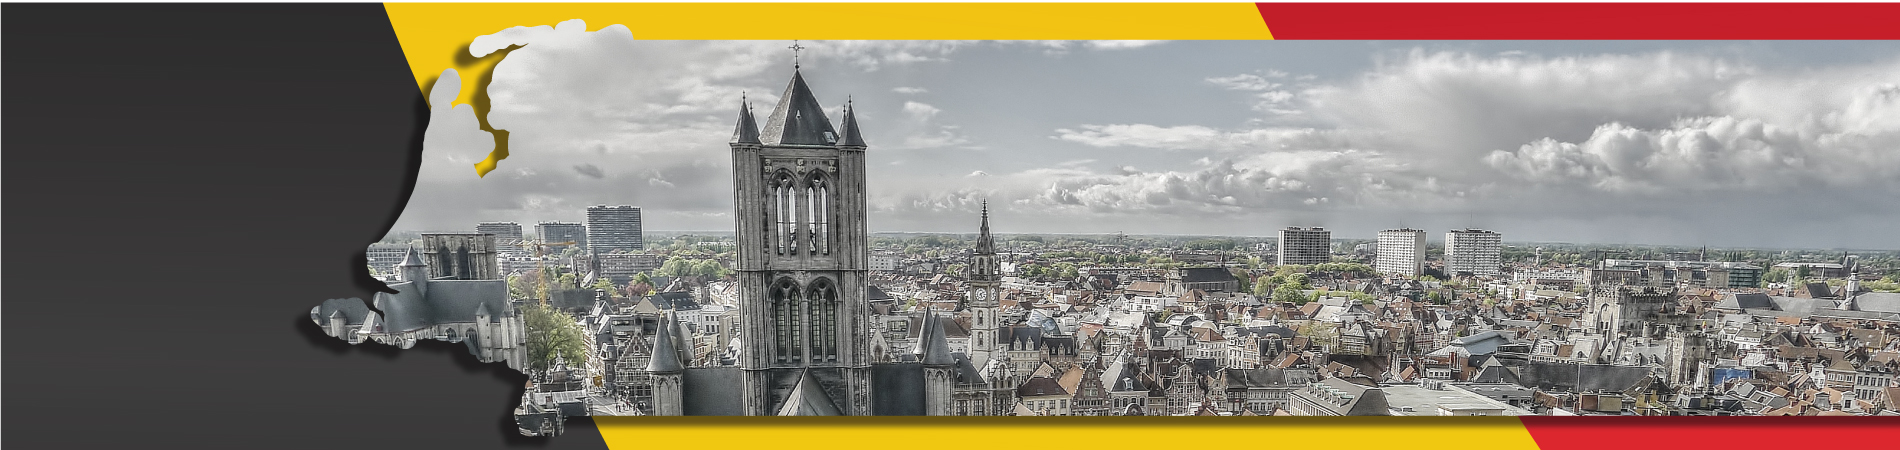 AMS Ghent Skyline tour